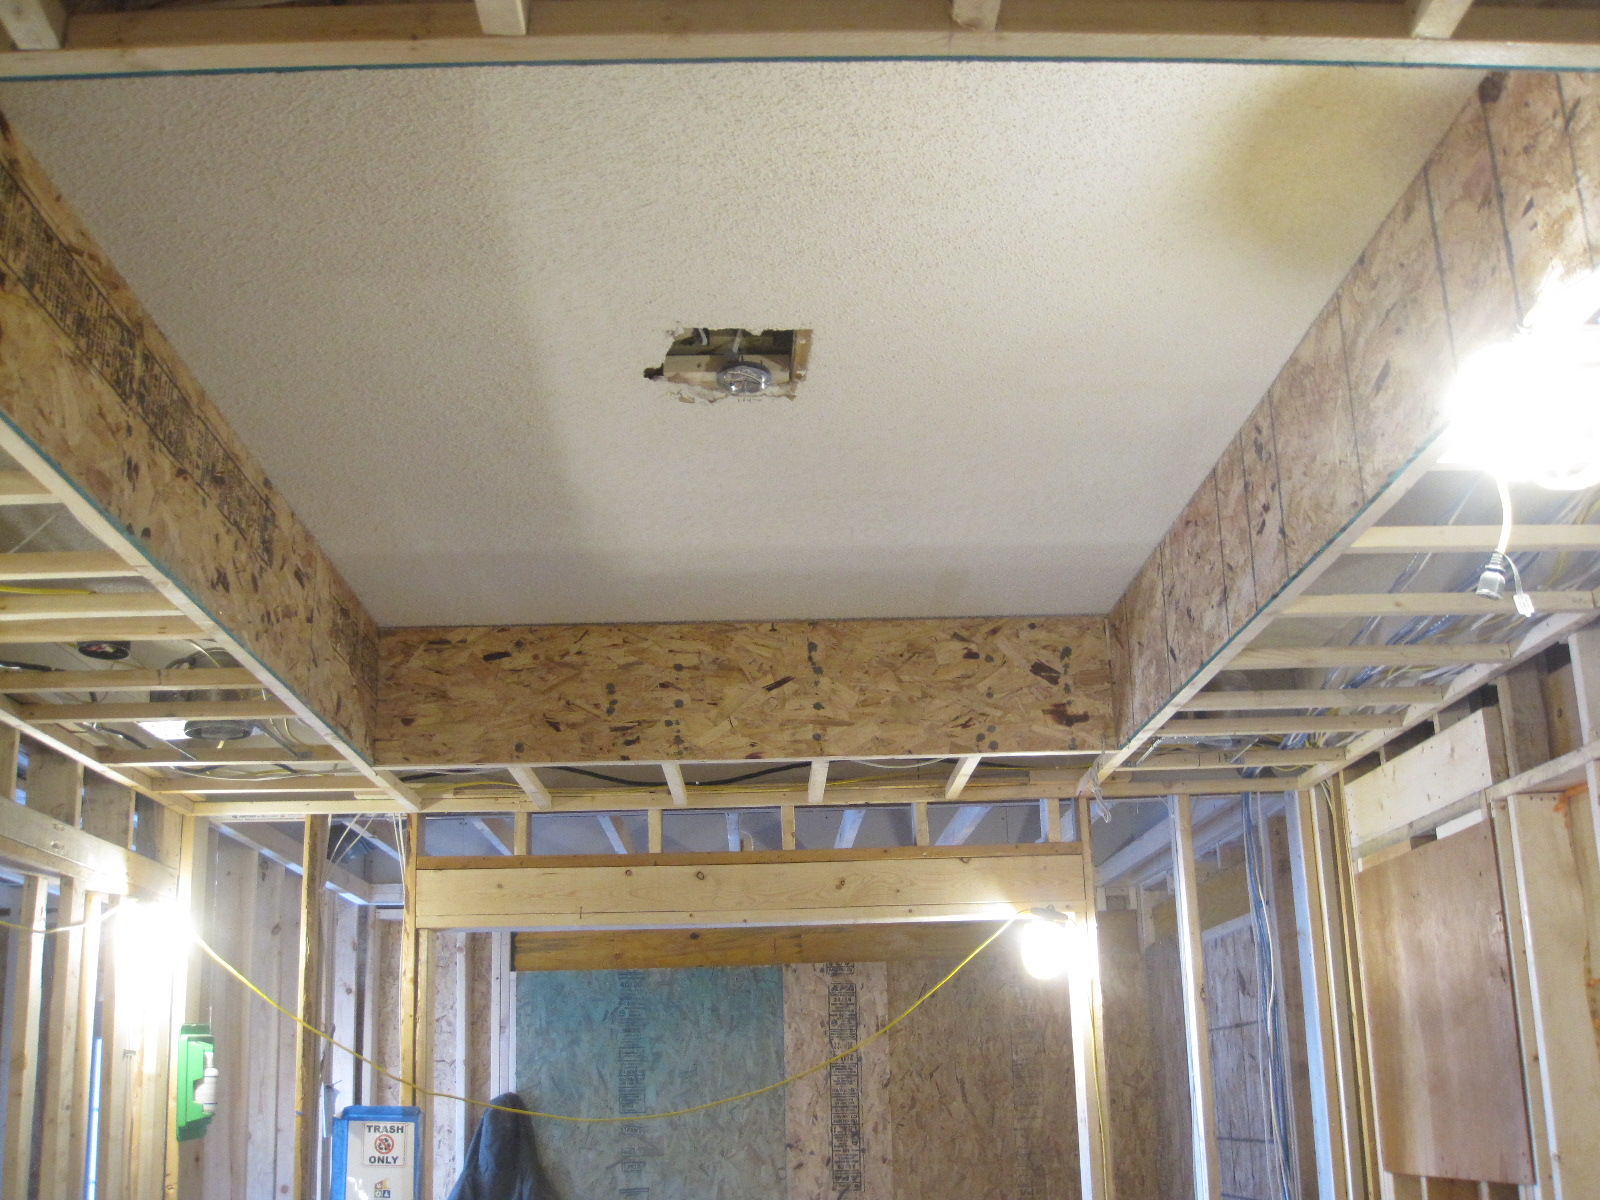 Soffits frame cove ceilings in all downstairs rooms